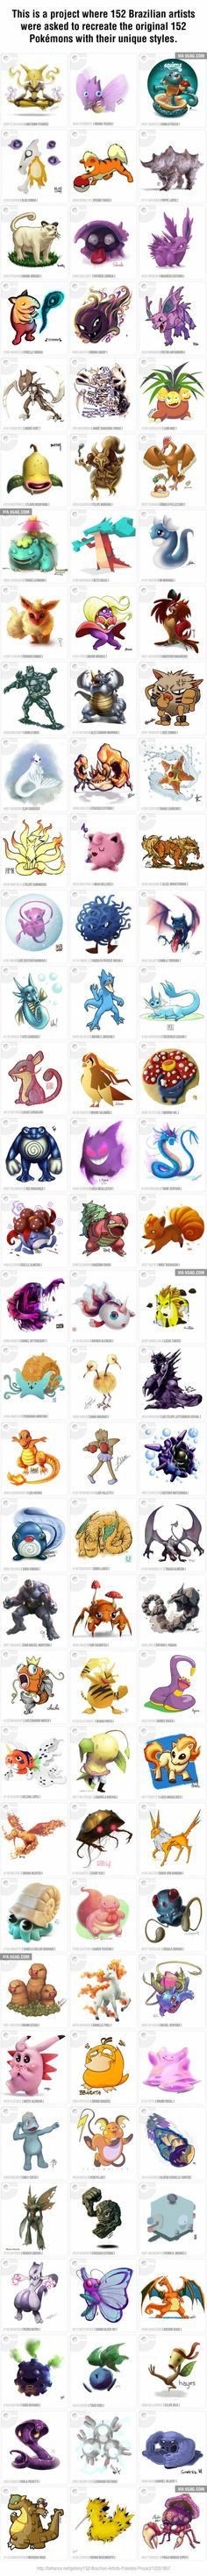 152 Brazilian Artists Pokedex Project